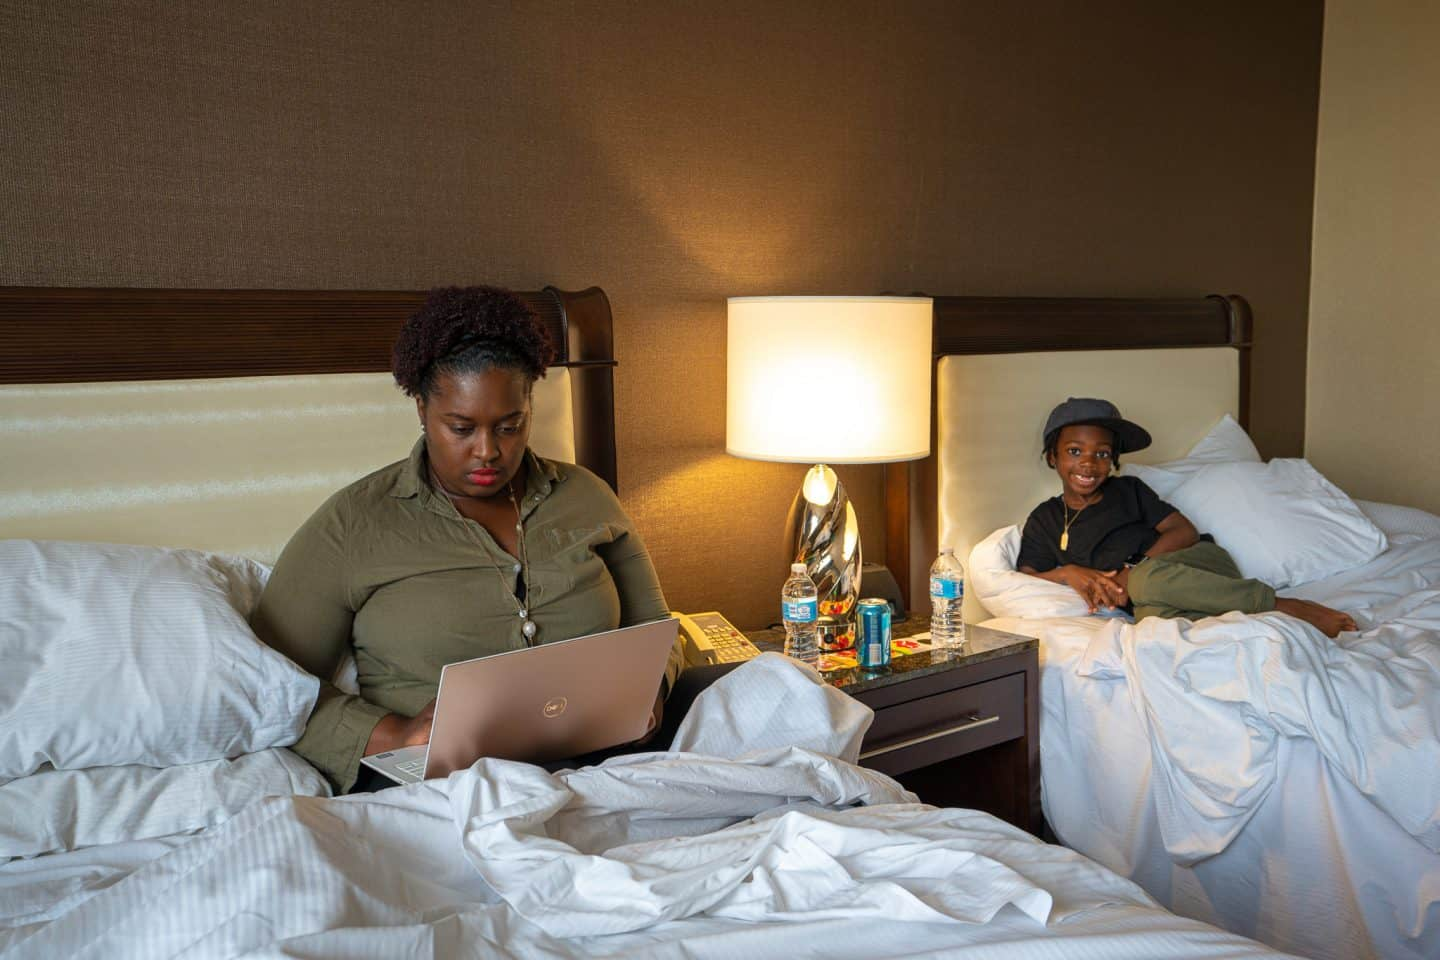 black family in hilton hotel room